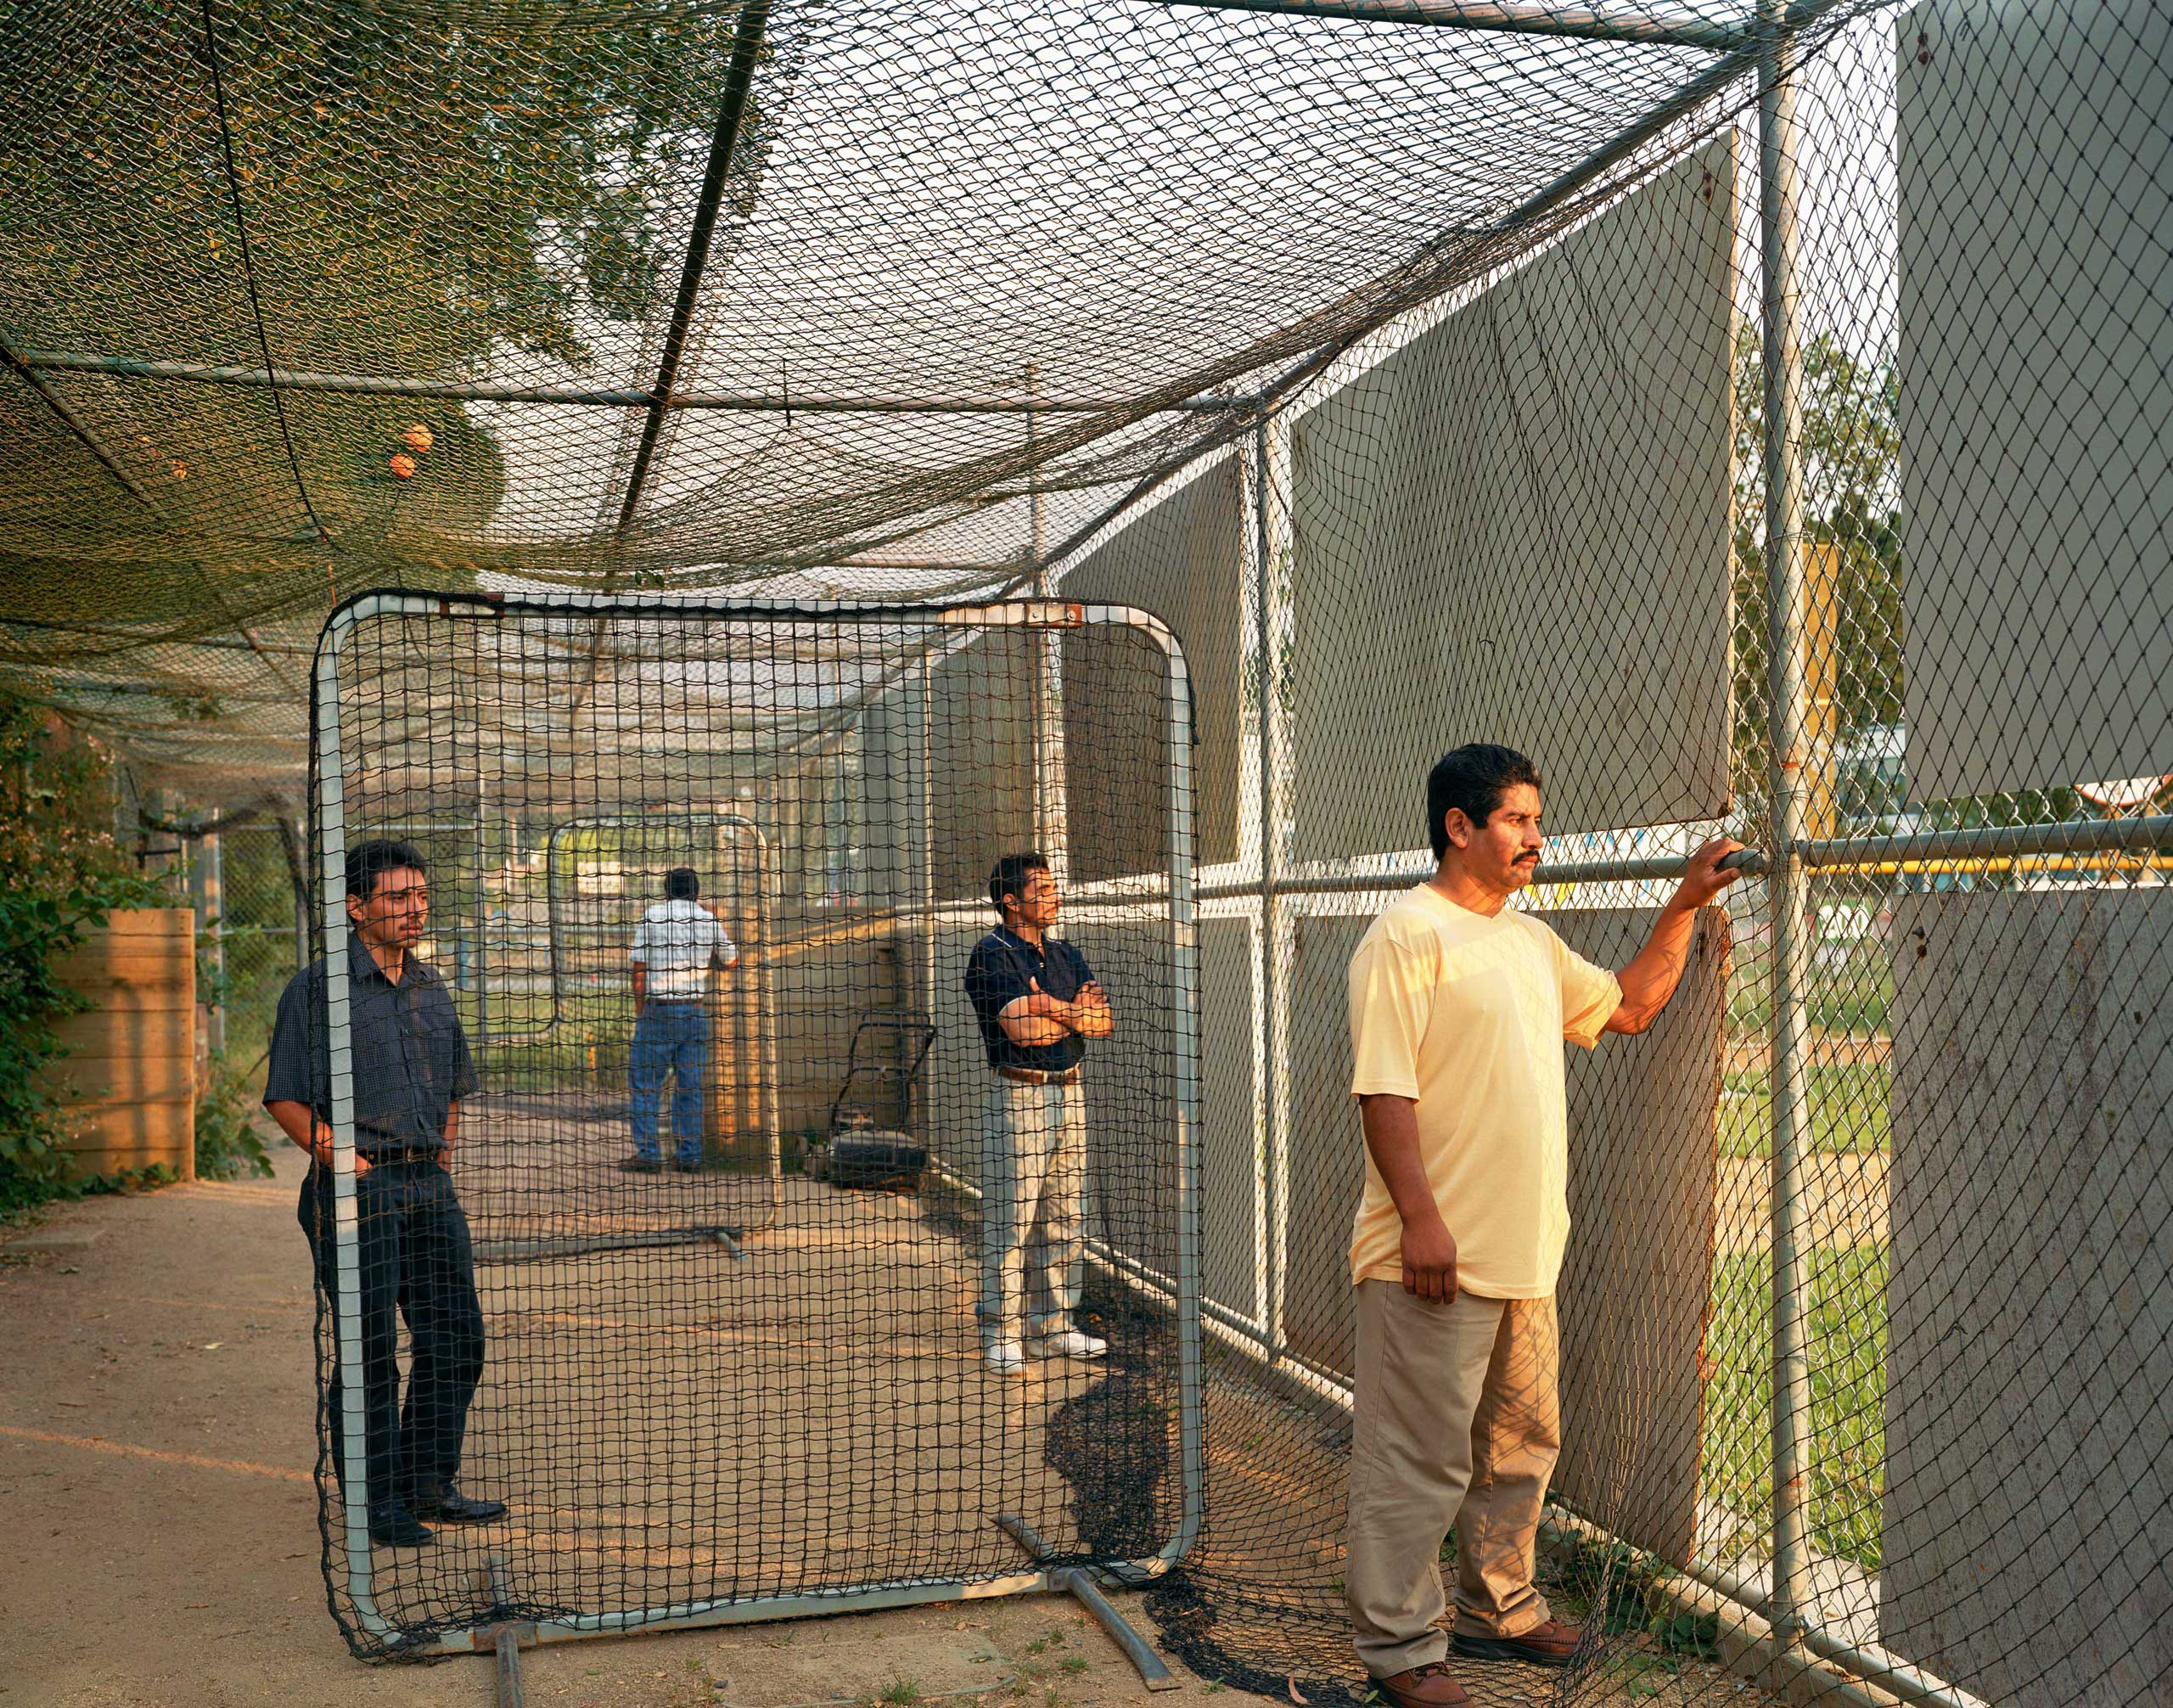 Batting Cage, 2007, from the series Homeland